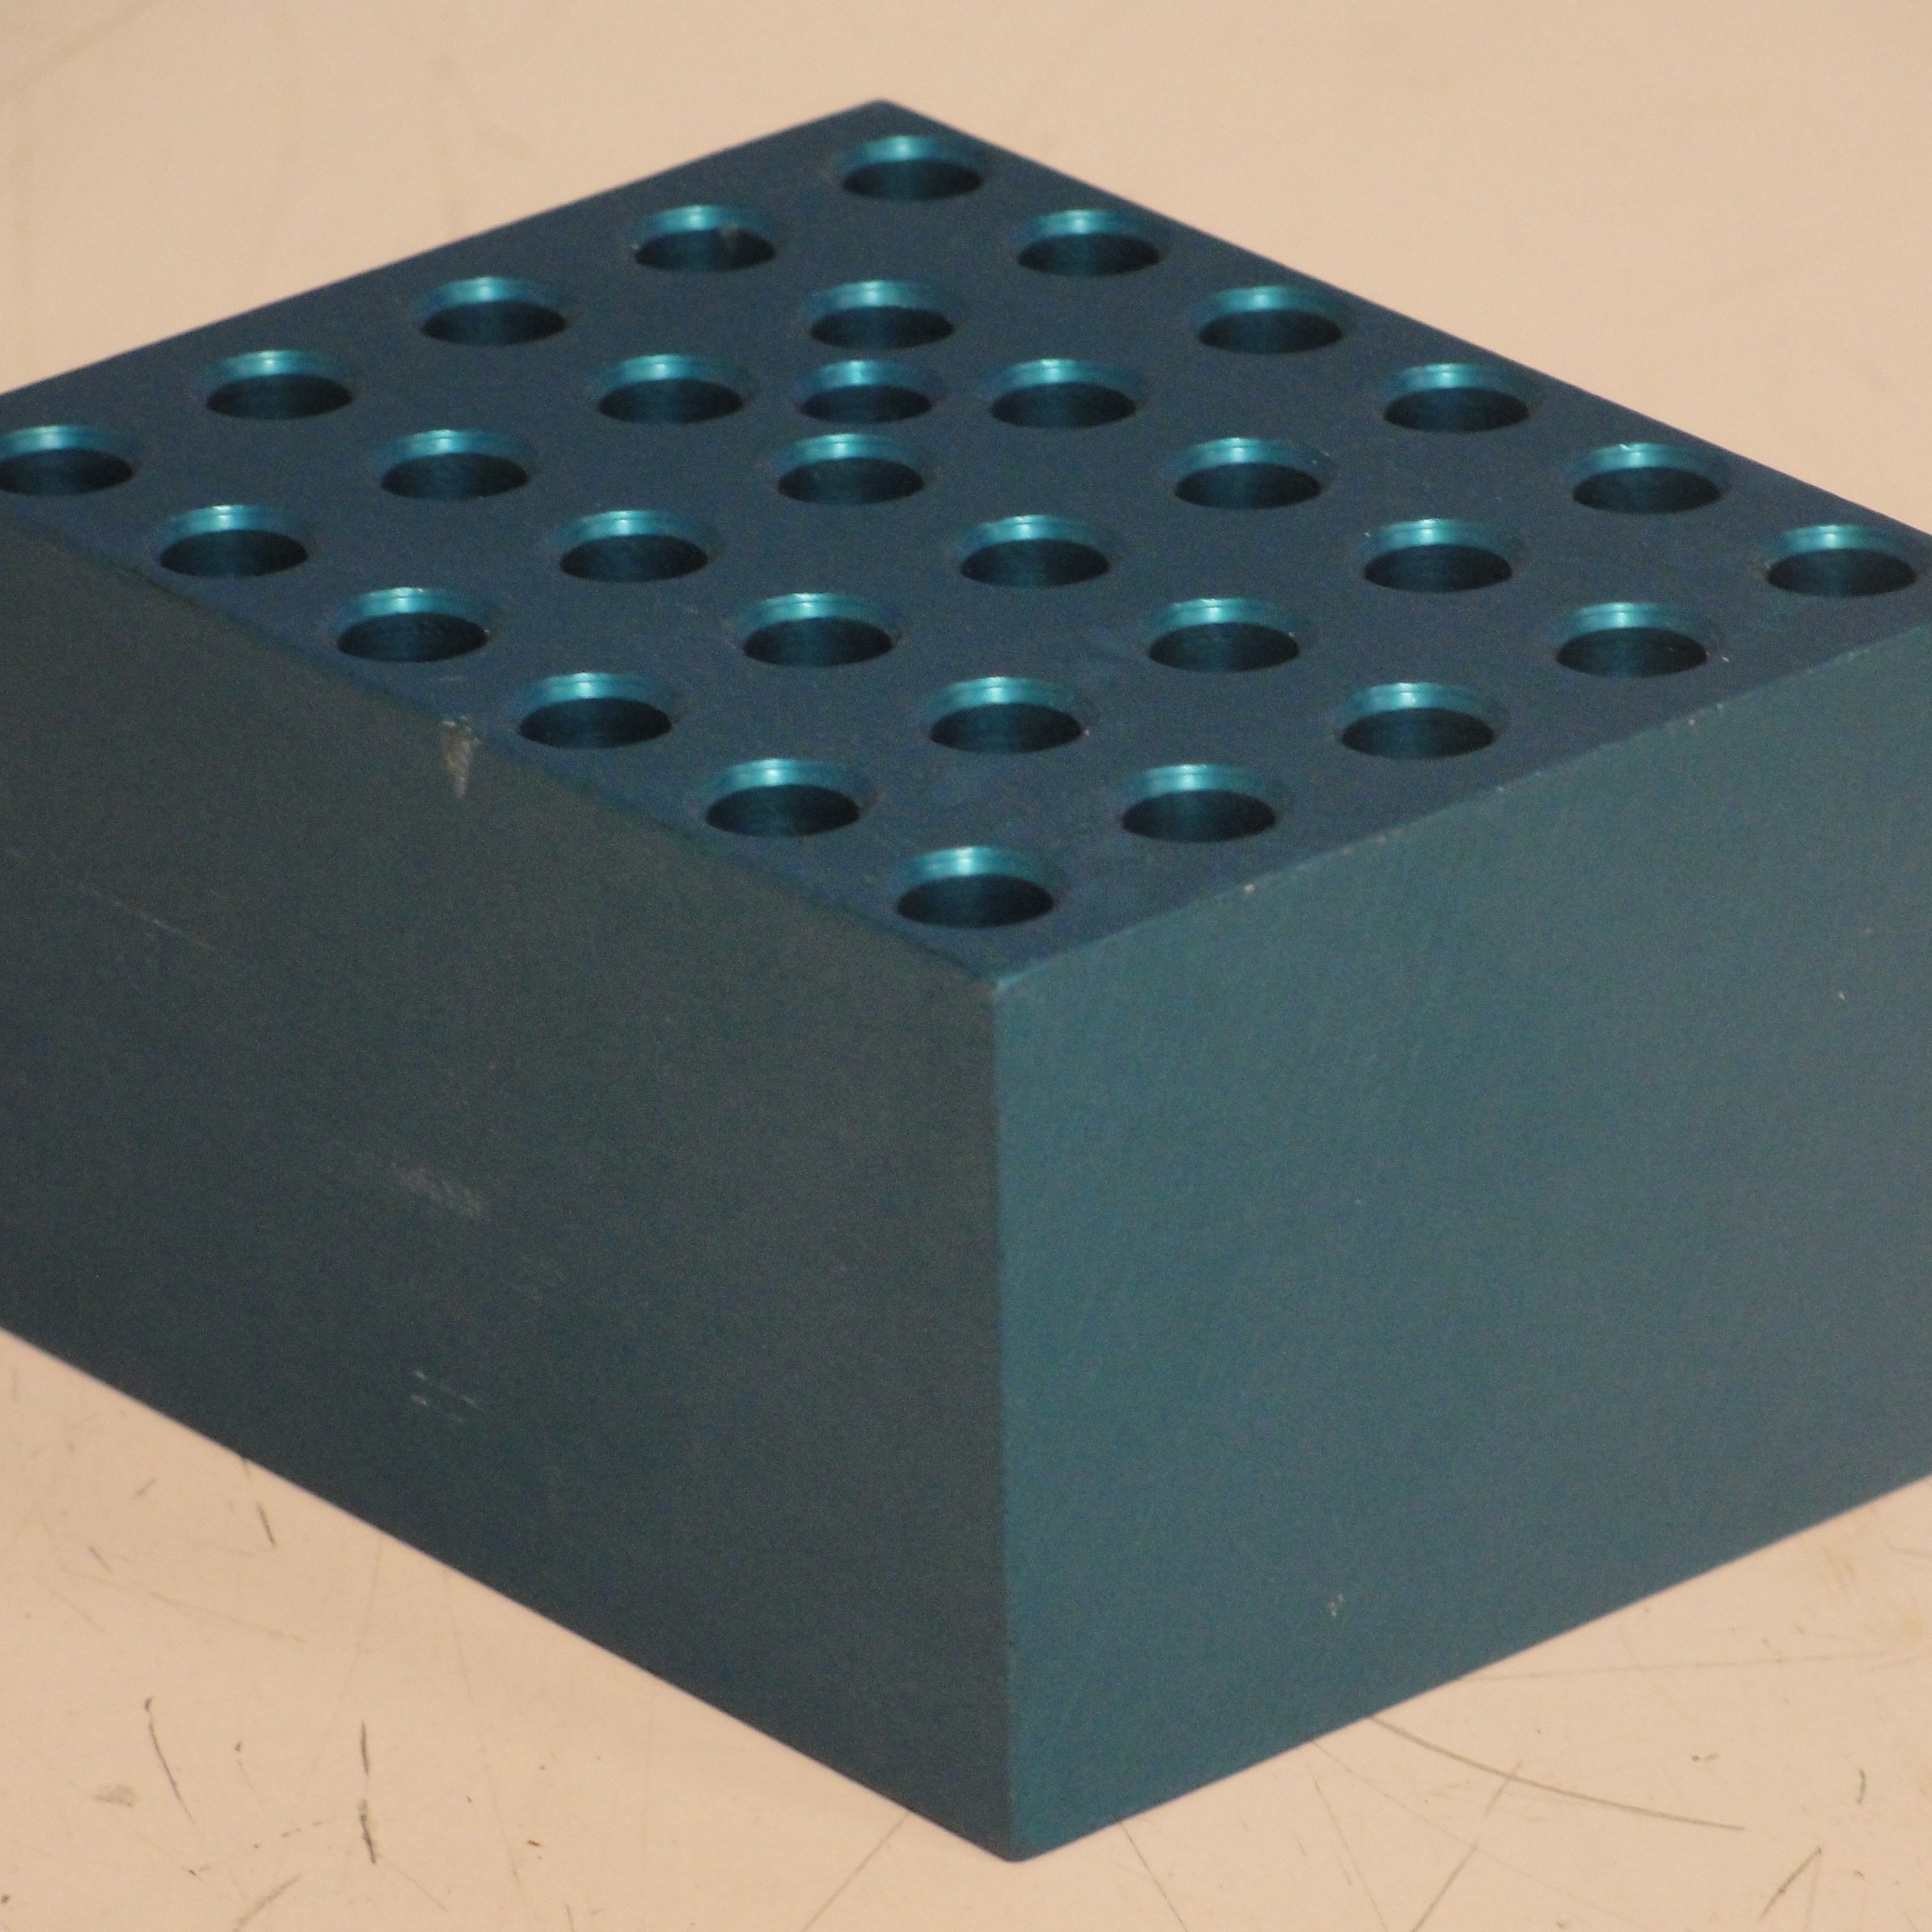 refurbished vwr microcentrifuge tube blocks